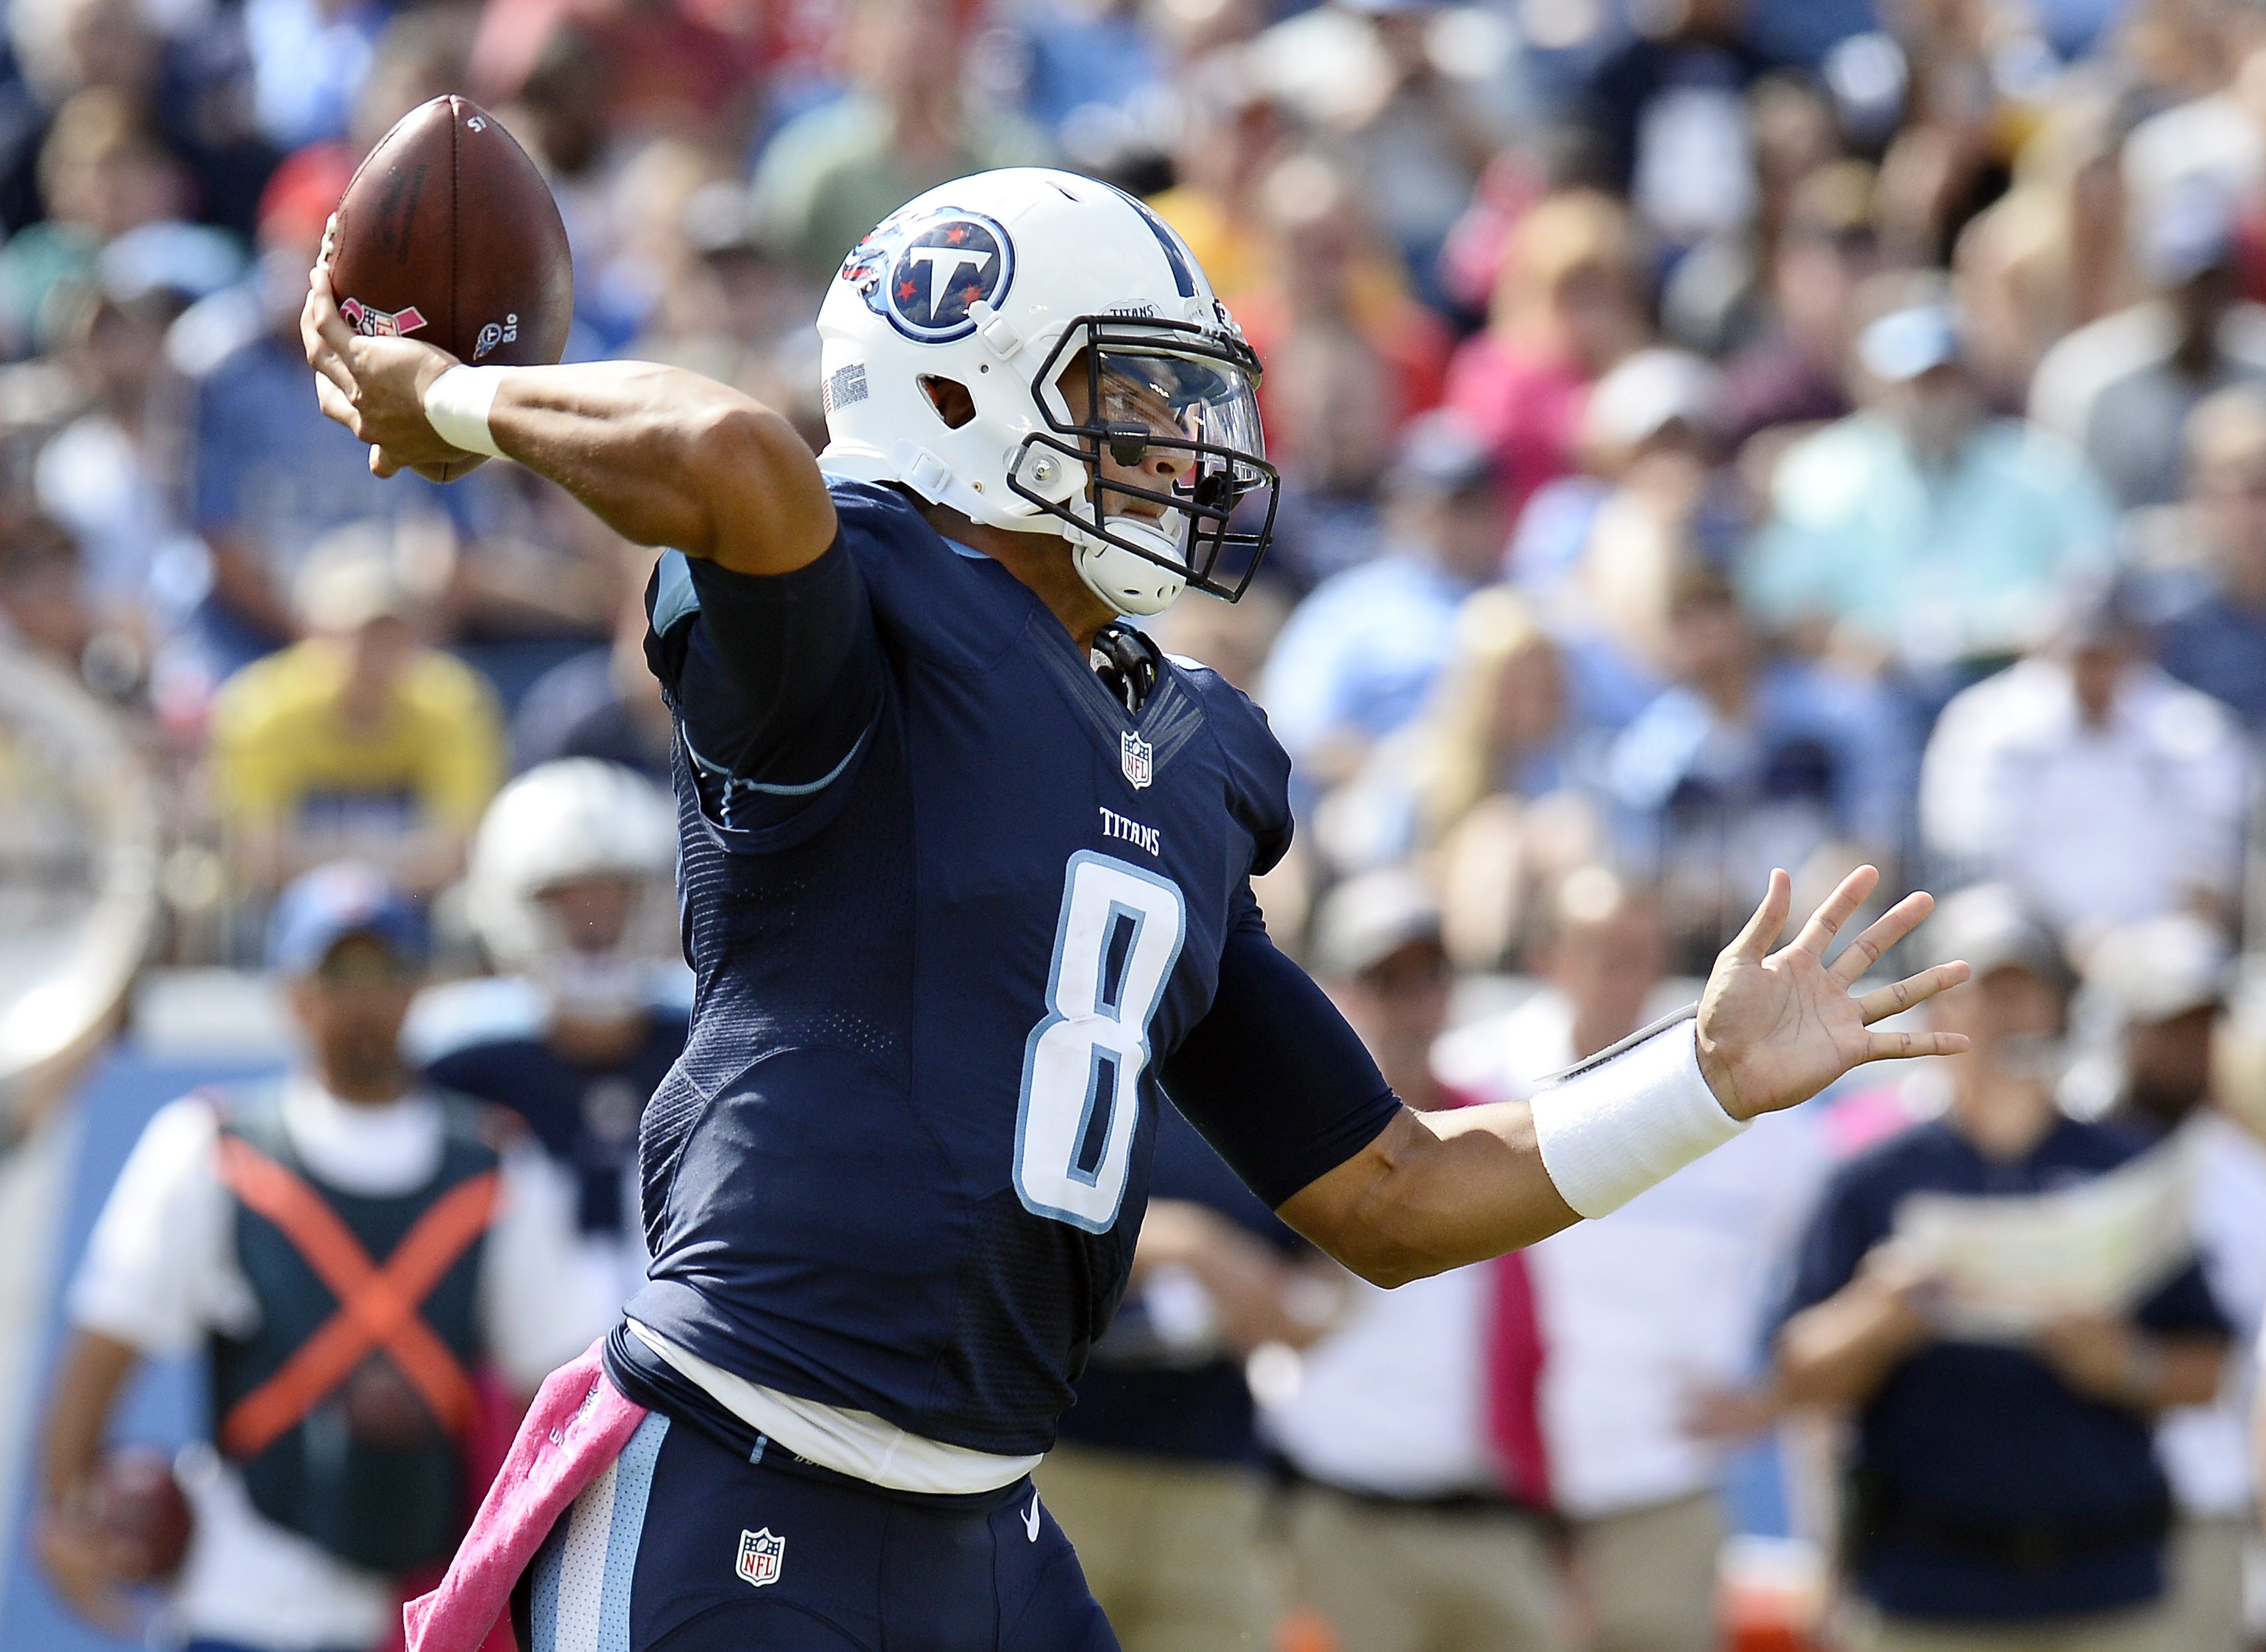 FILE - In this Oct. 16, 2016, file photo, Tennessee Titans quarterback Marcus Mariota passes against the Cleveland Browns in the second half of an NFL football game in Nashville, Tenn. The Titans can win three straight games for the first time in five yea